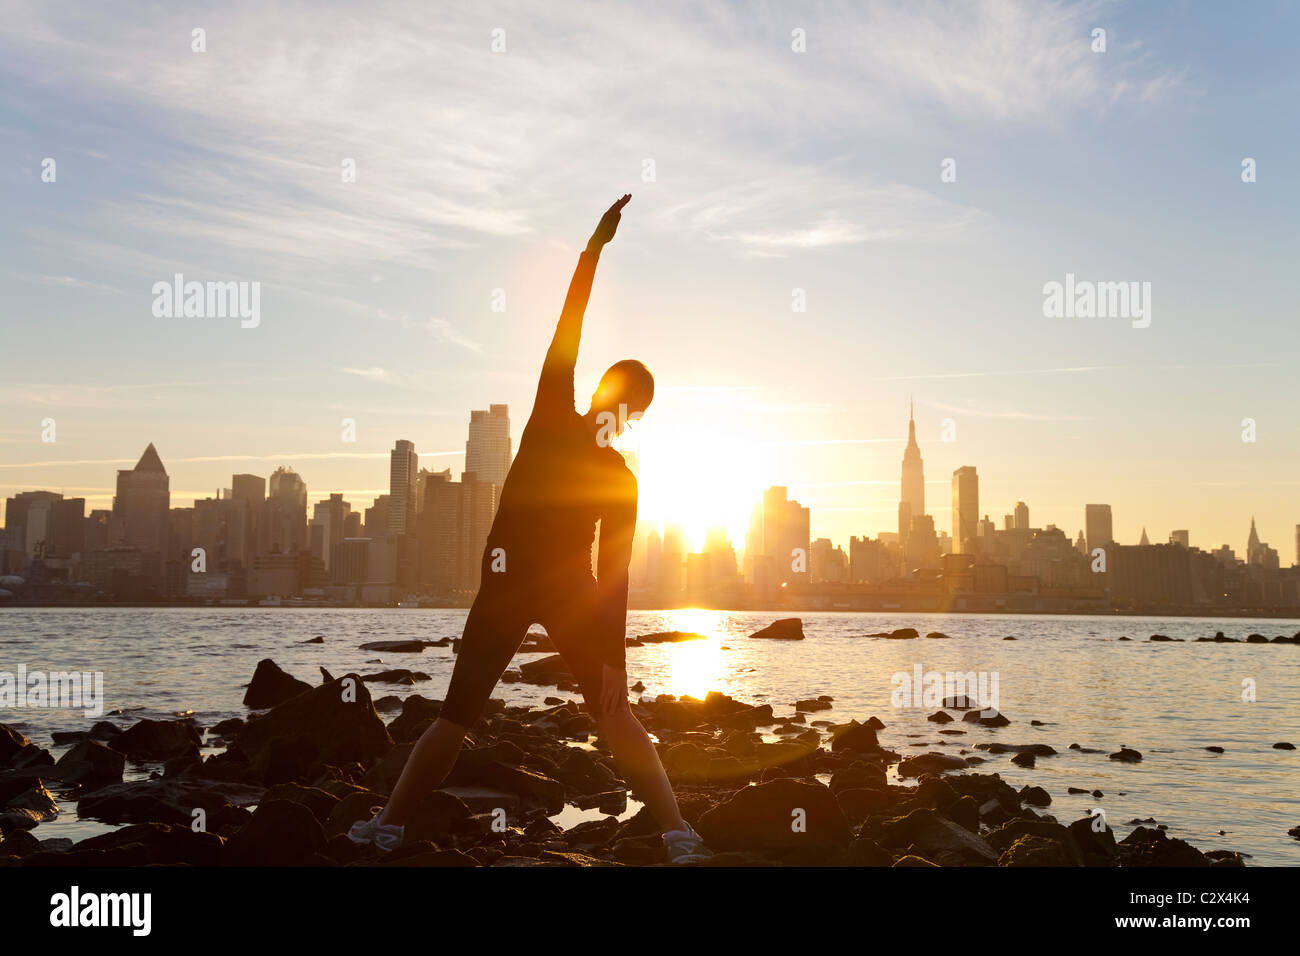 Ein Frau Läufer stretching in einer Yogaposition vor der Skyline von Manhattan, New York City, USA, am Dawn Stockbild